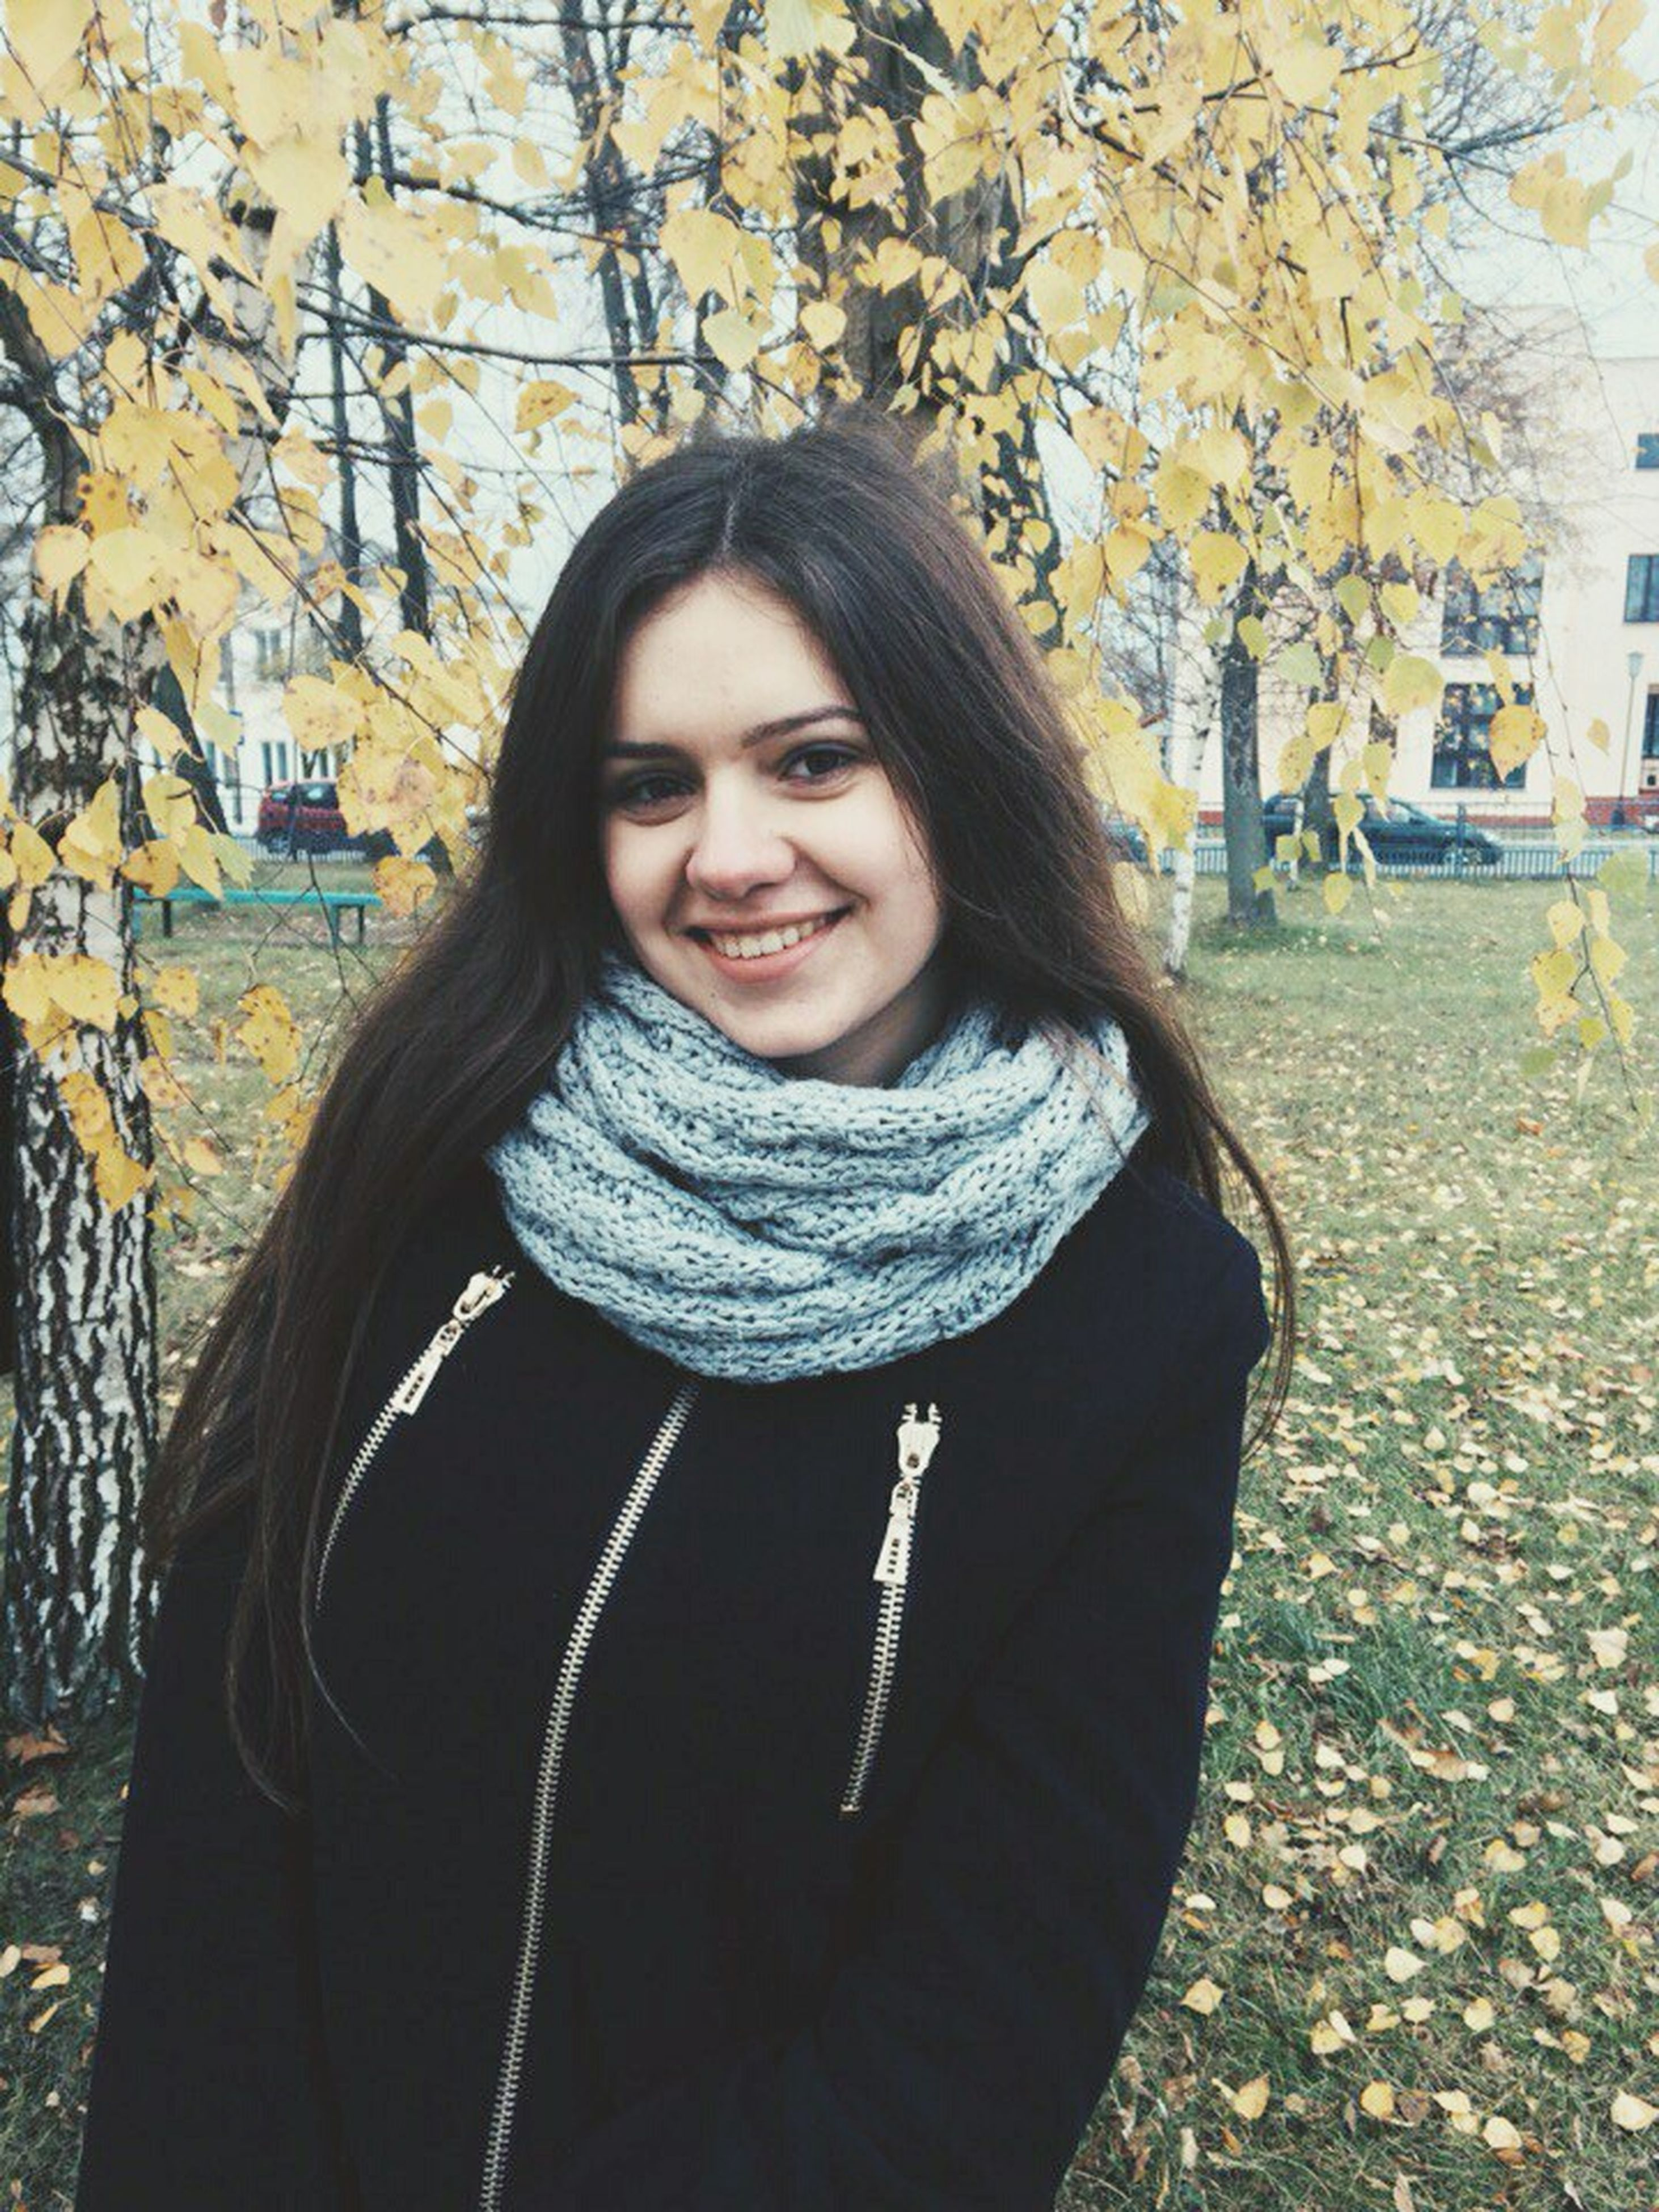 looking at camera, portrait, person, young adult, lifestyles, front view, casual clothing, young women, smiling, leisure activity, standing, long hair, tree, happiness, waist up, warm clothing, jacket